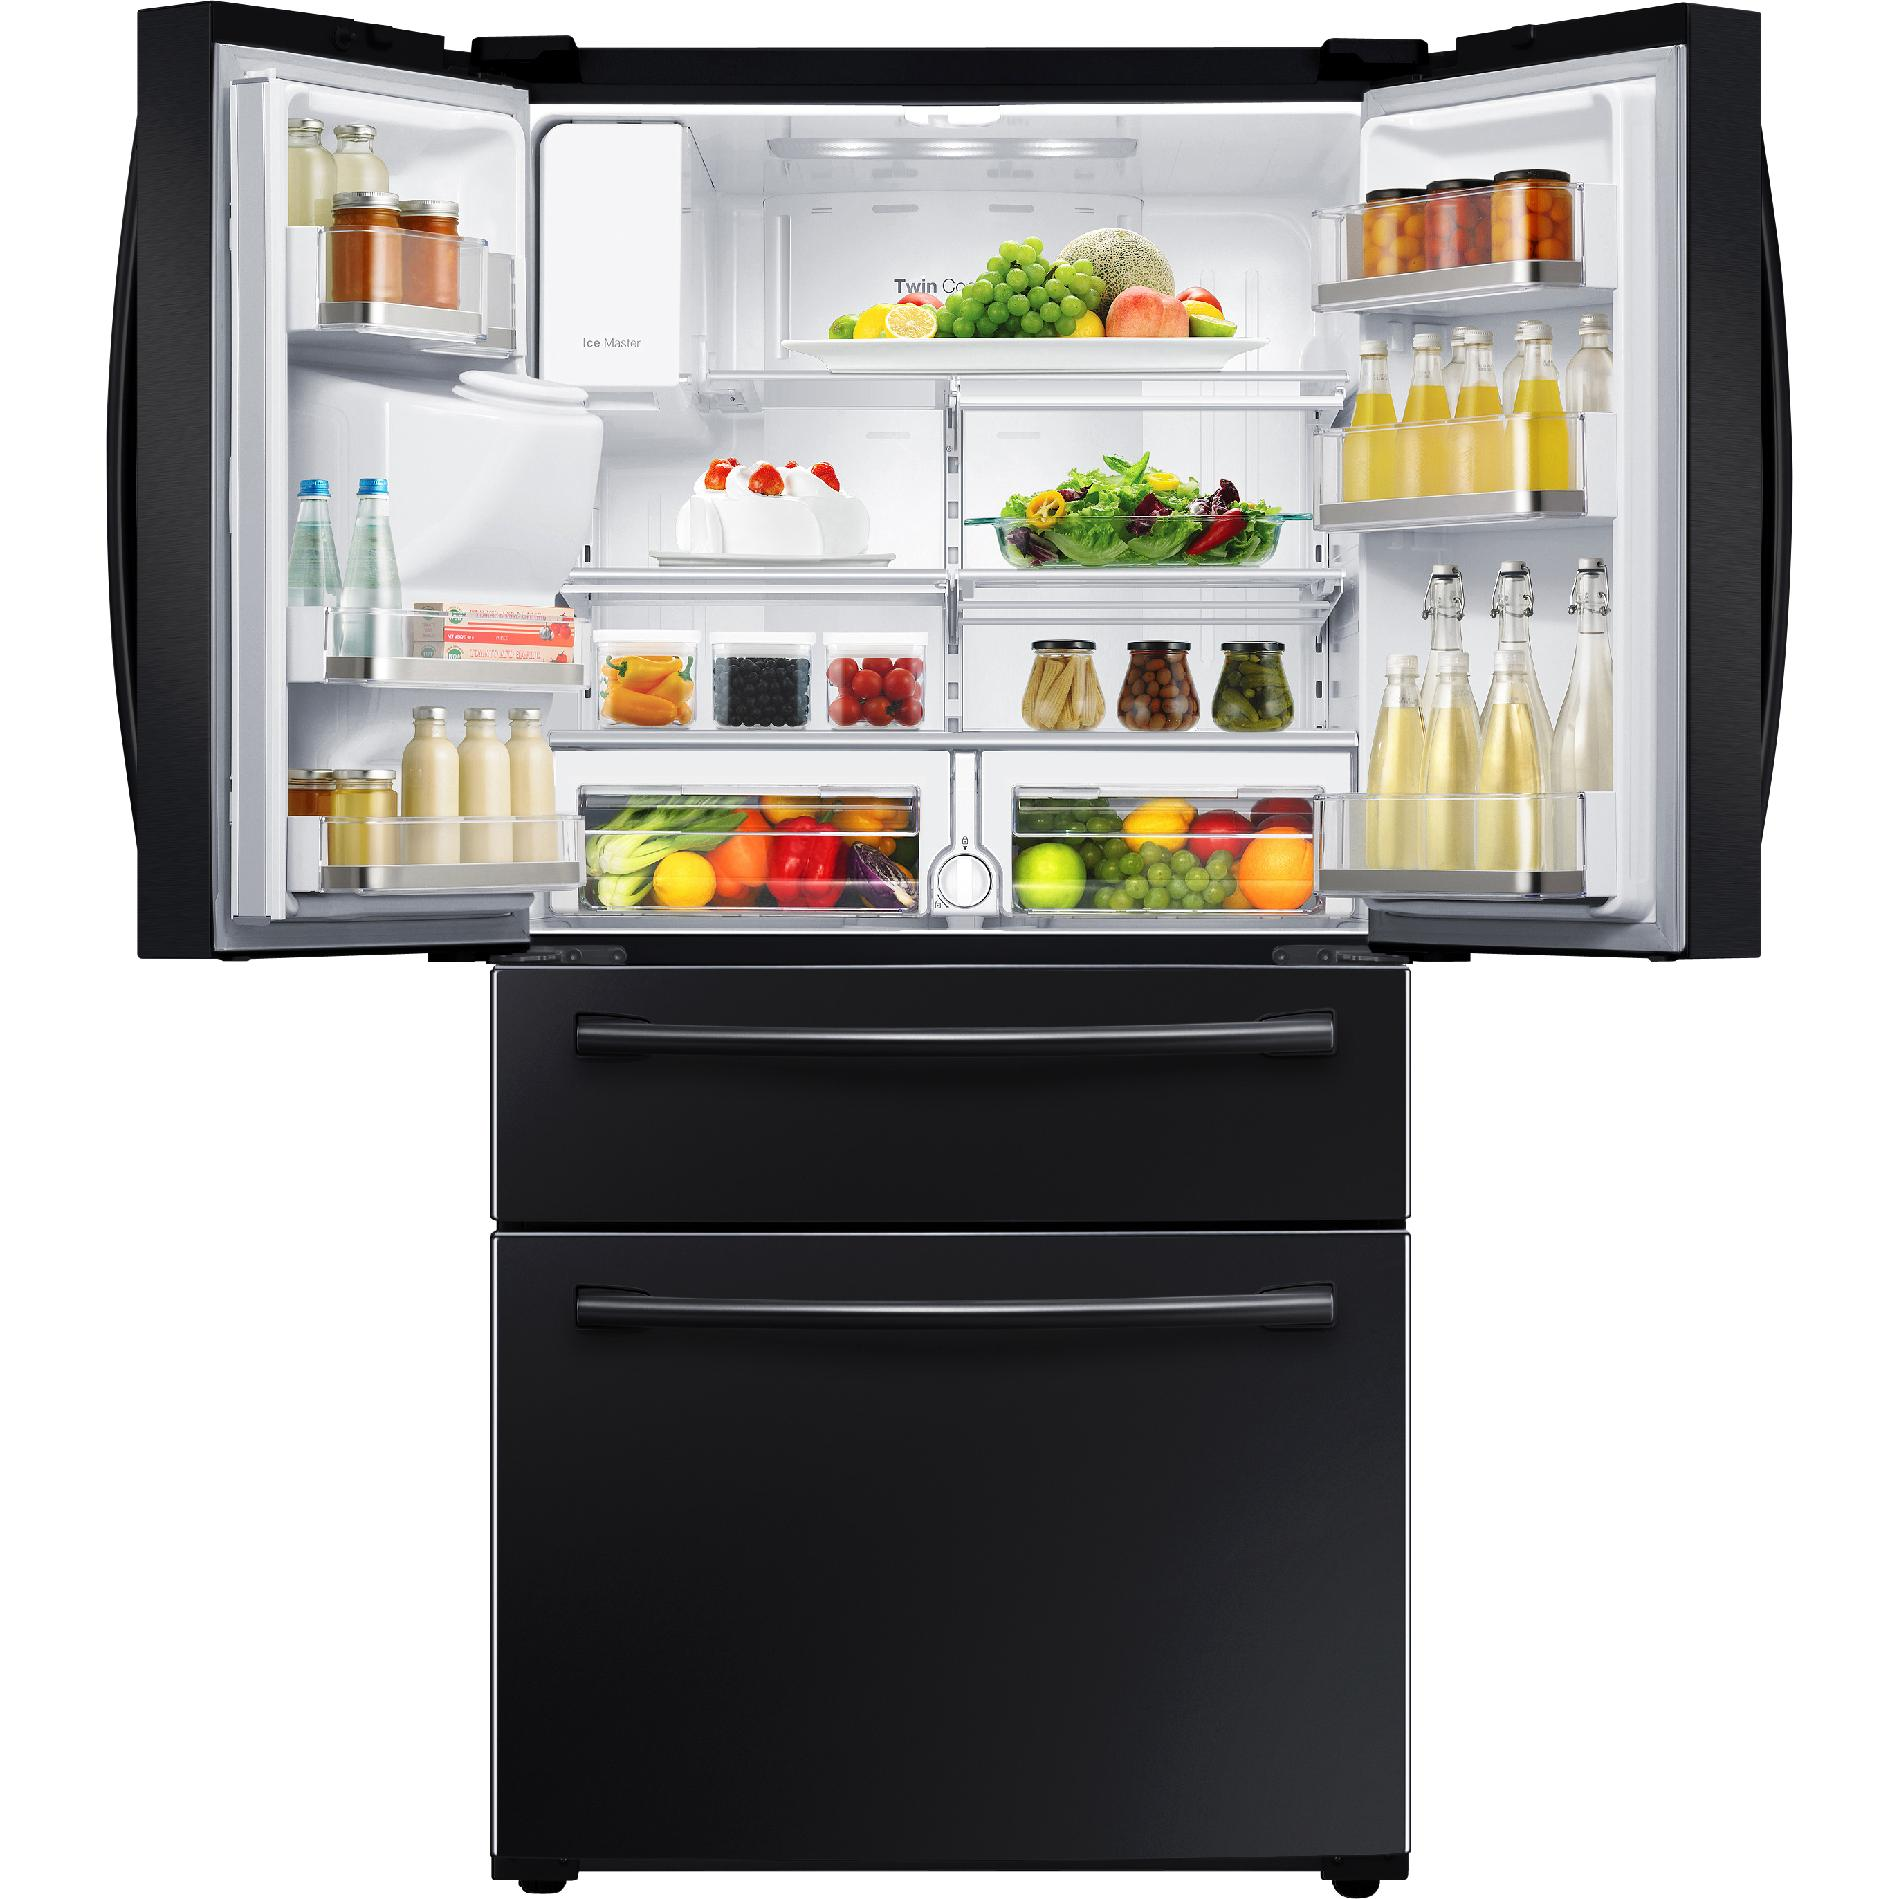 Samsung RF28HMEDBBC/AA 28 cu. ft. 4-Door French Door Refrigerator - Black